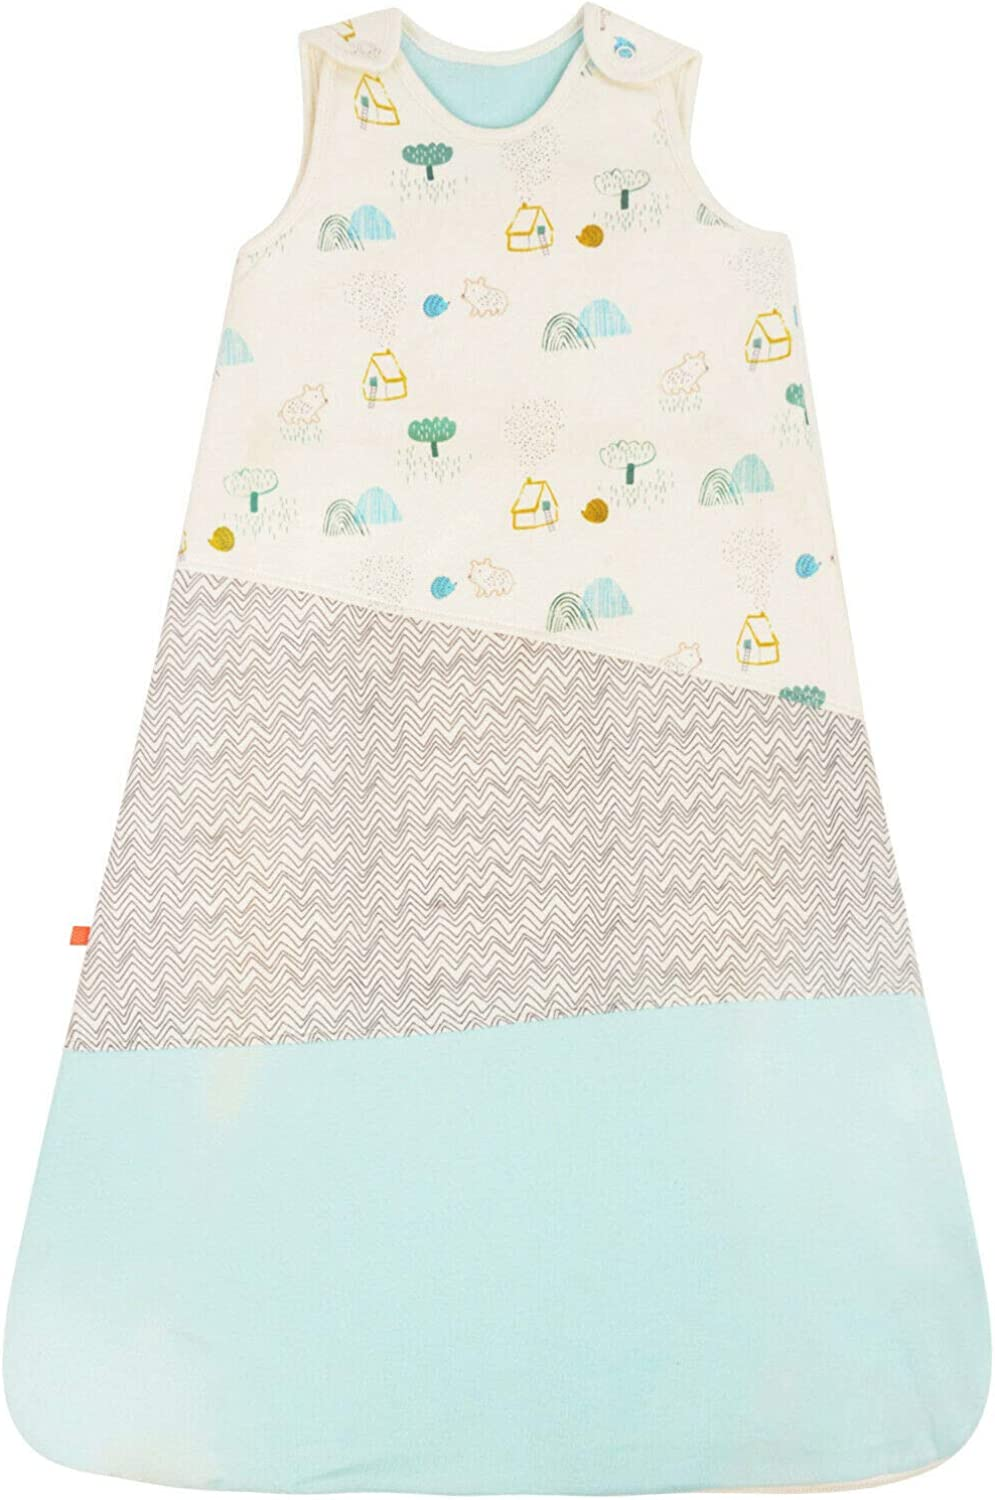 Paradise Baby Sleeping Bag EX Marks /& Spencer Boys Girls 0-36M TOG 1.2-2.4 New